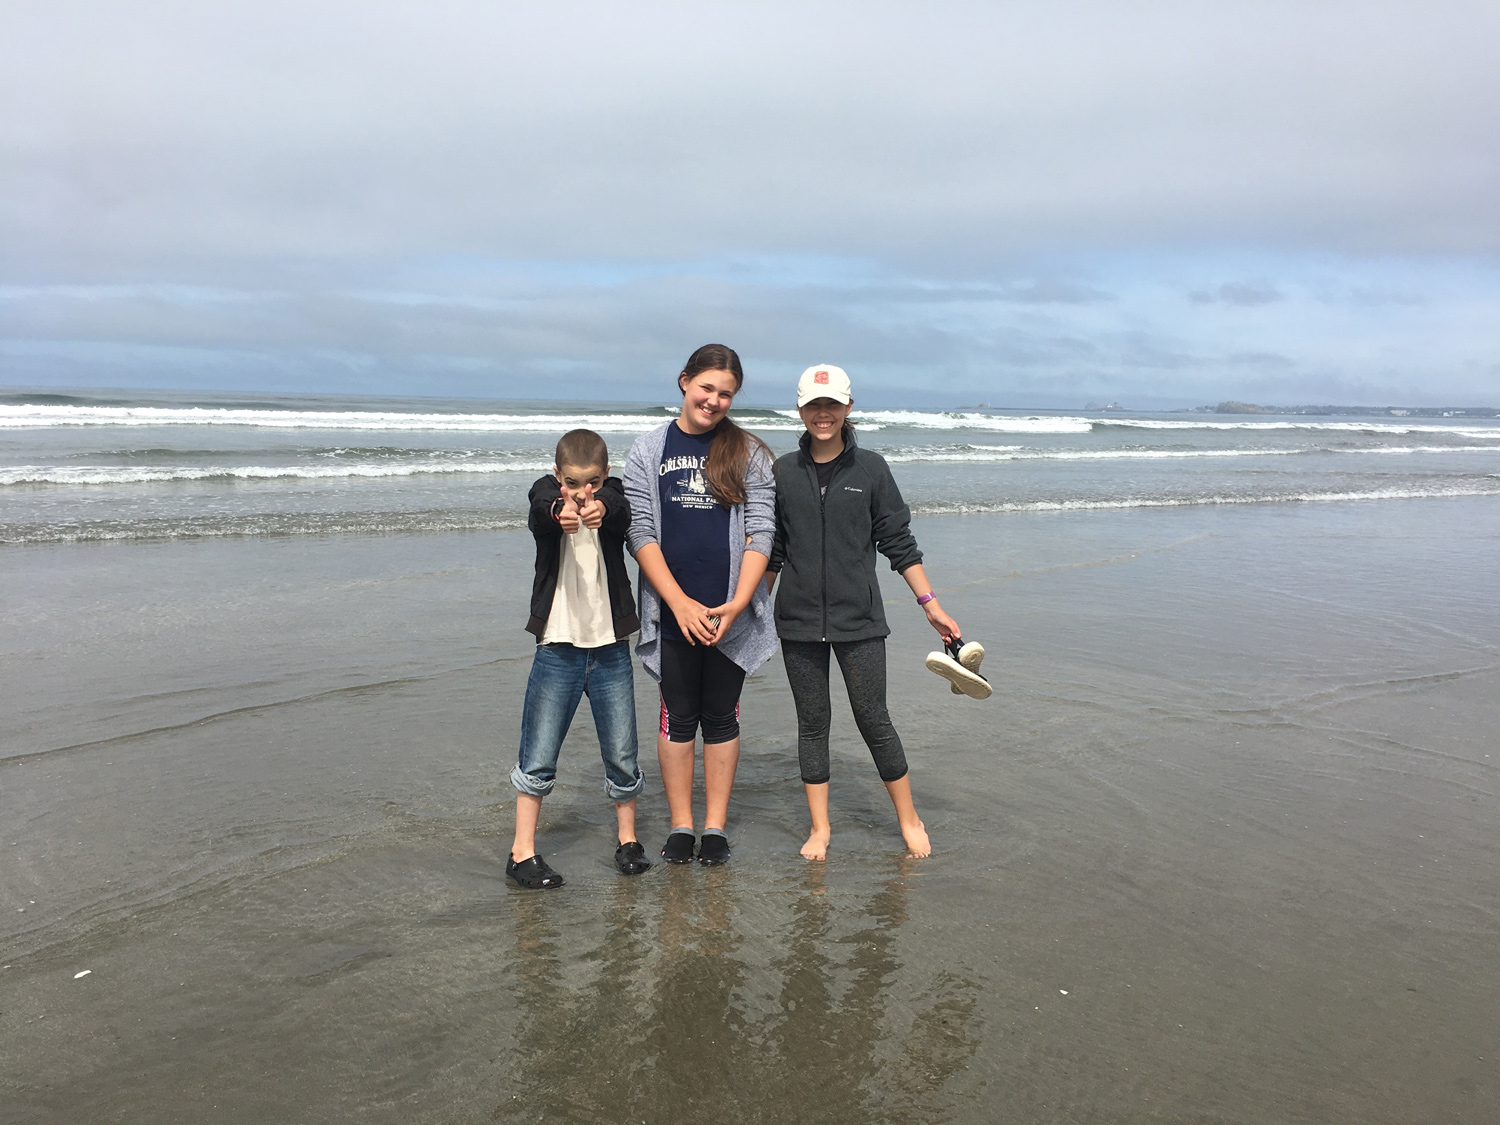 The water was cold, but fun was had by all at Enderts Beach in California.